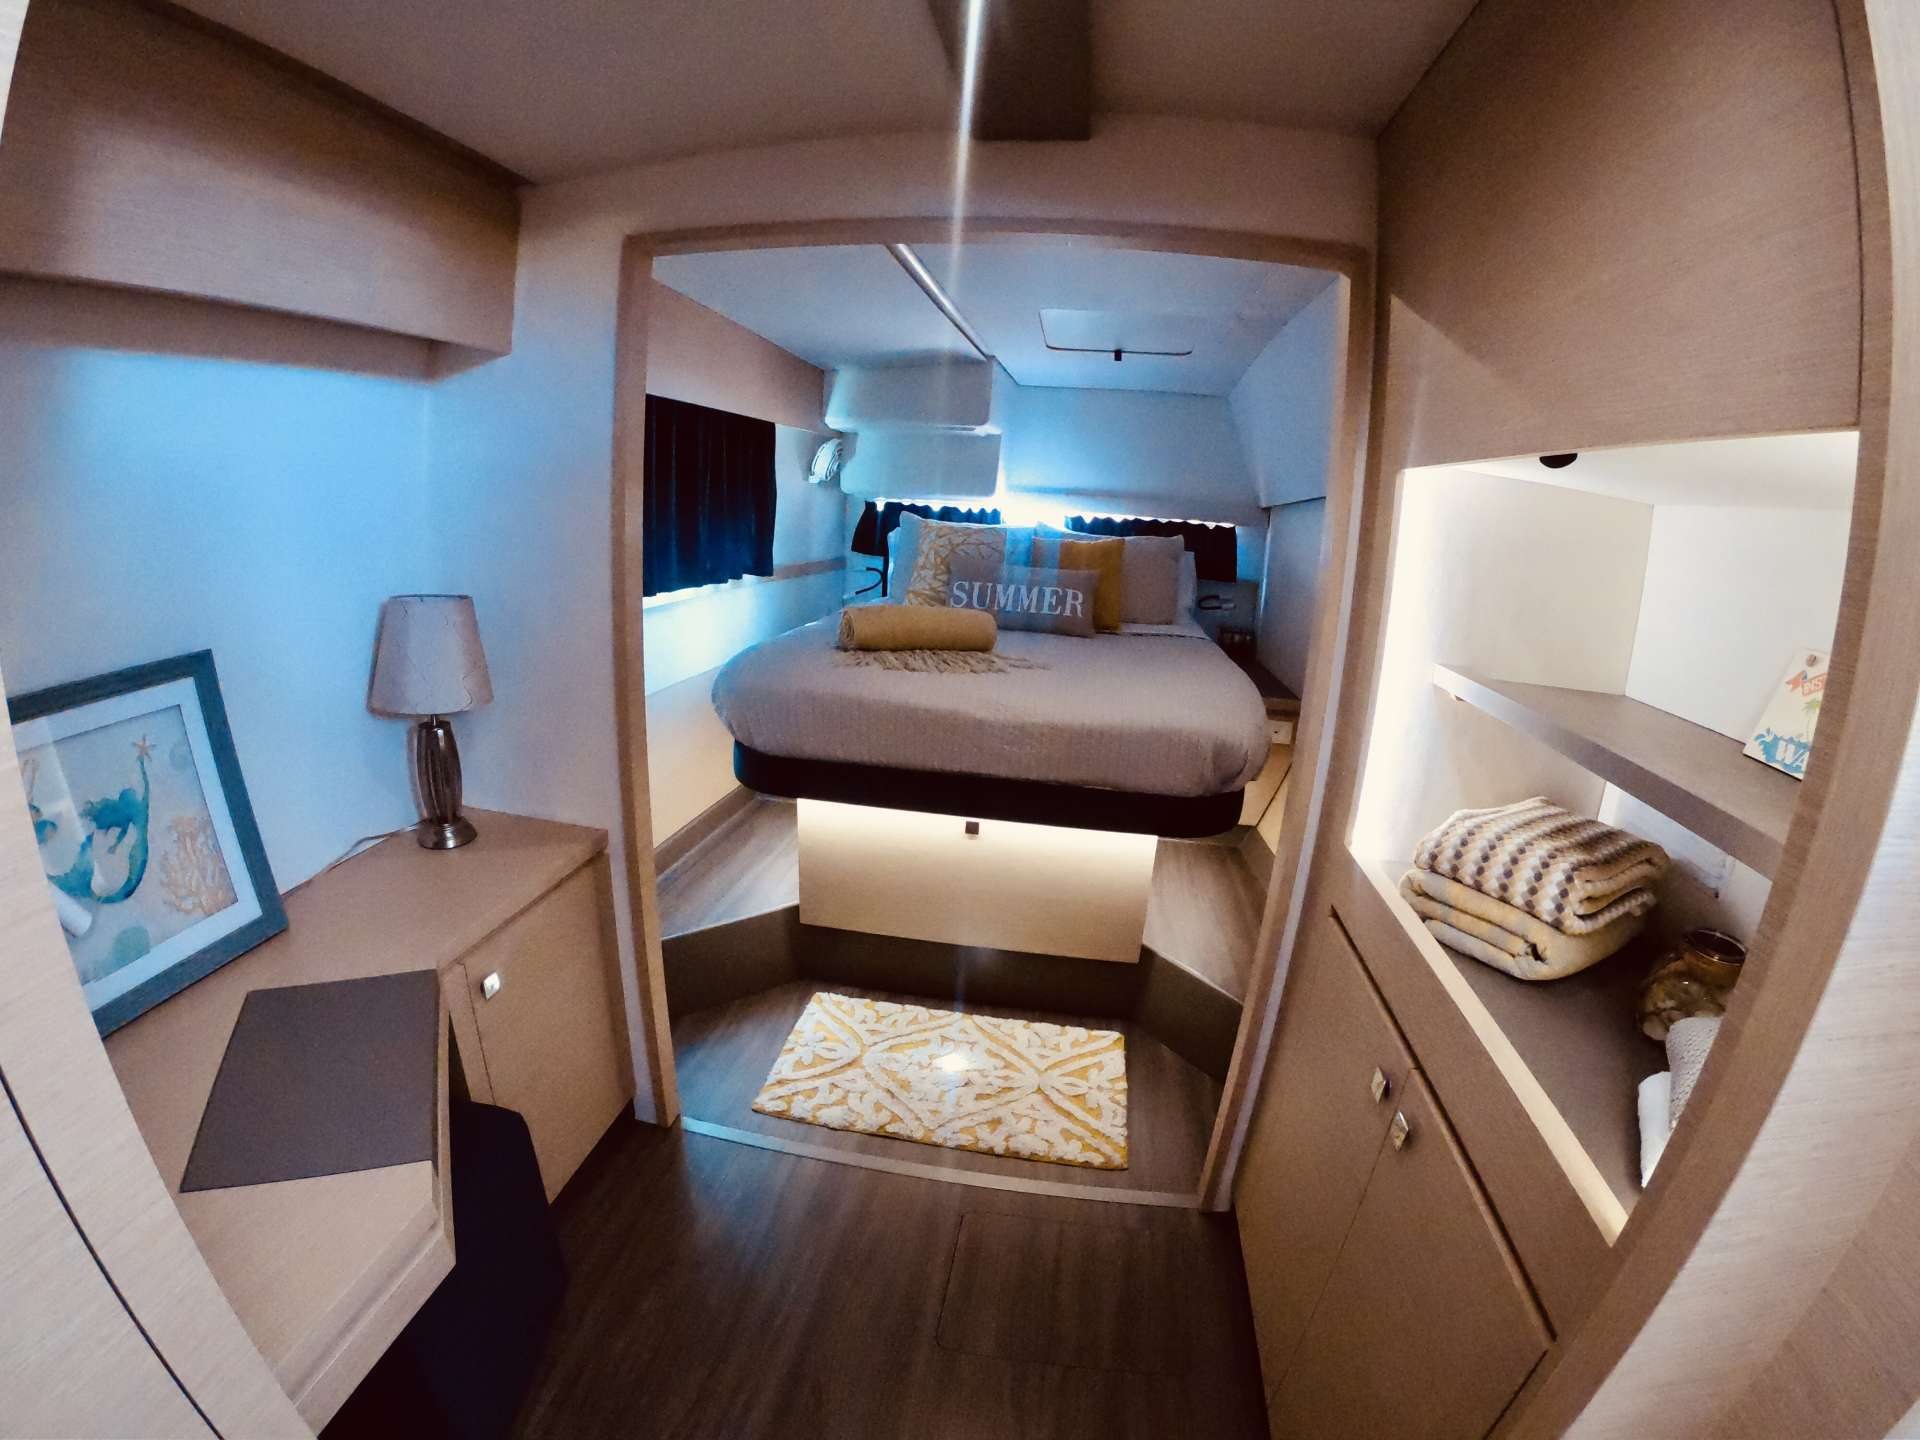 Queen Suite with ample storage and walking space